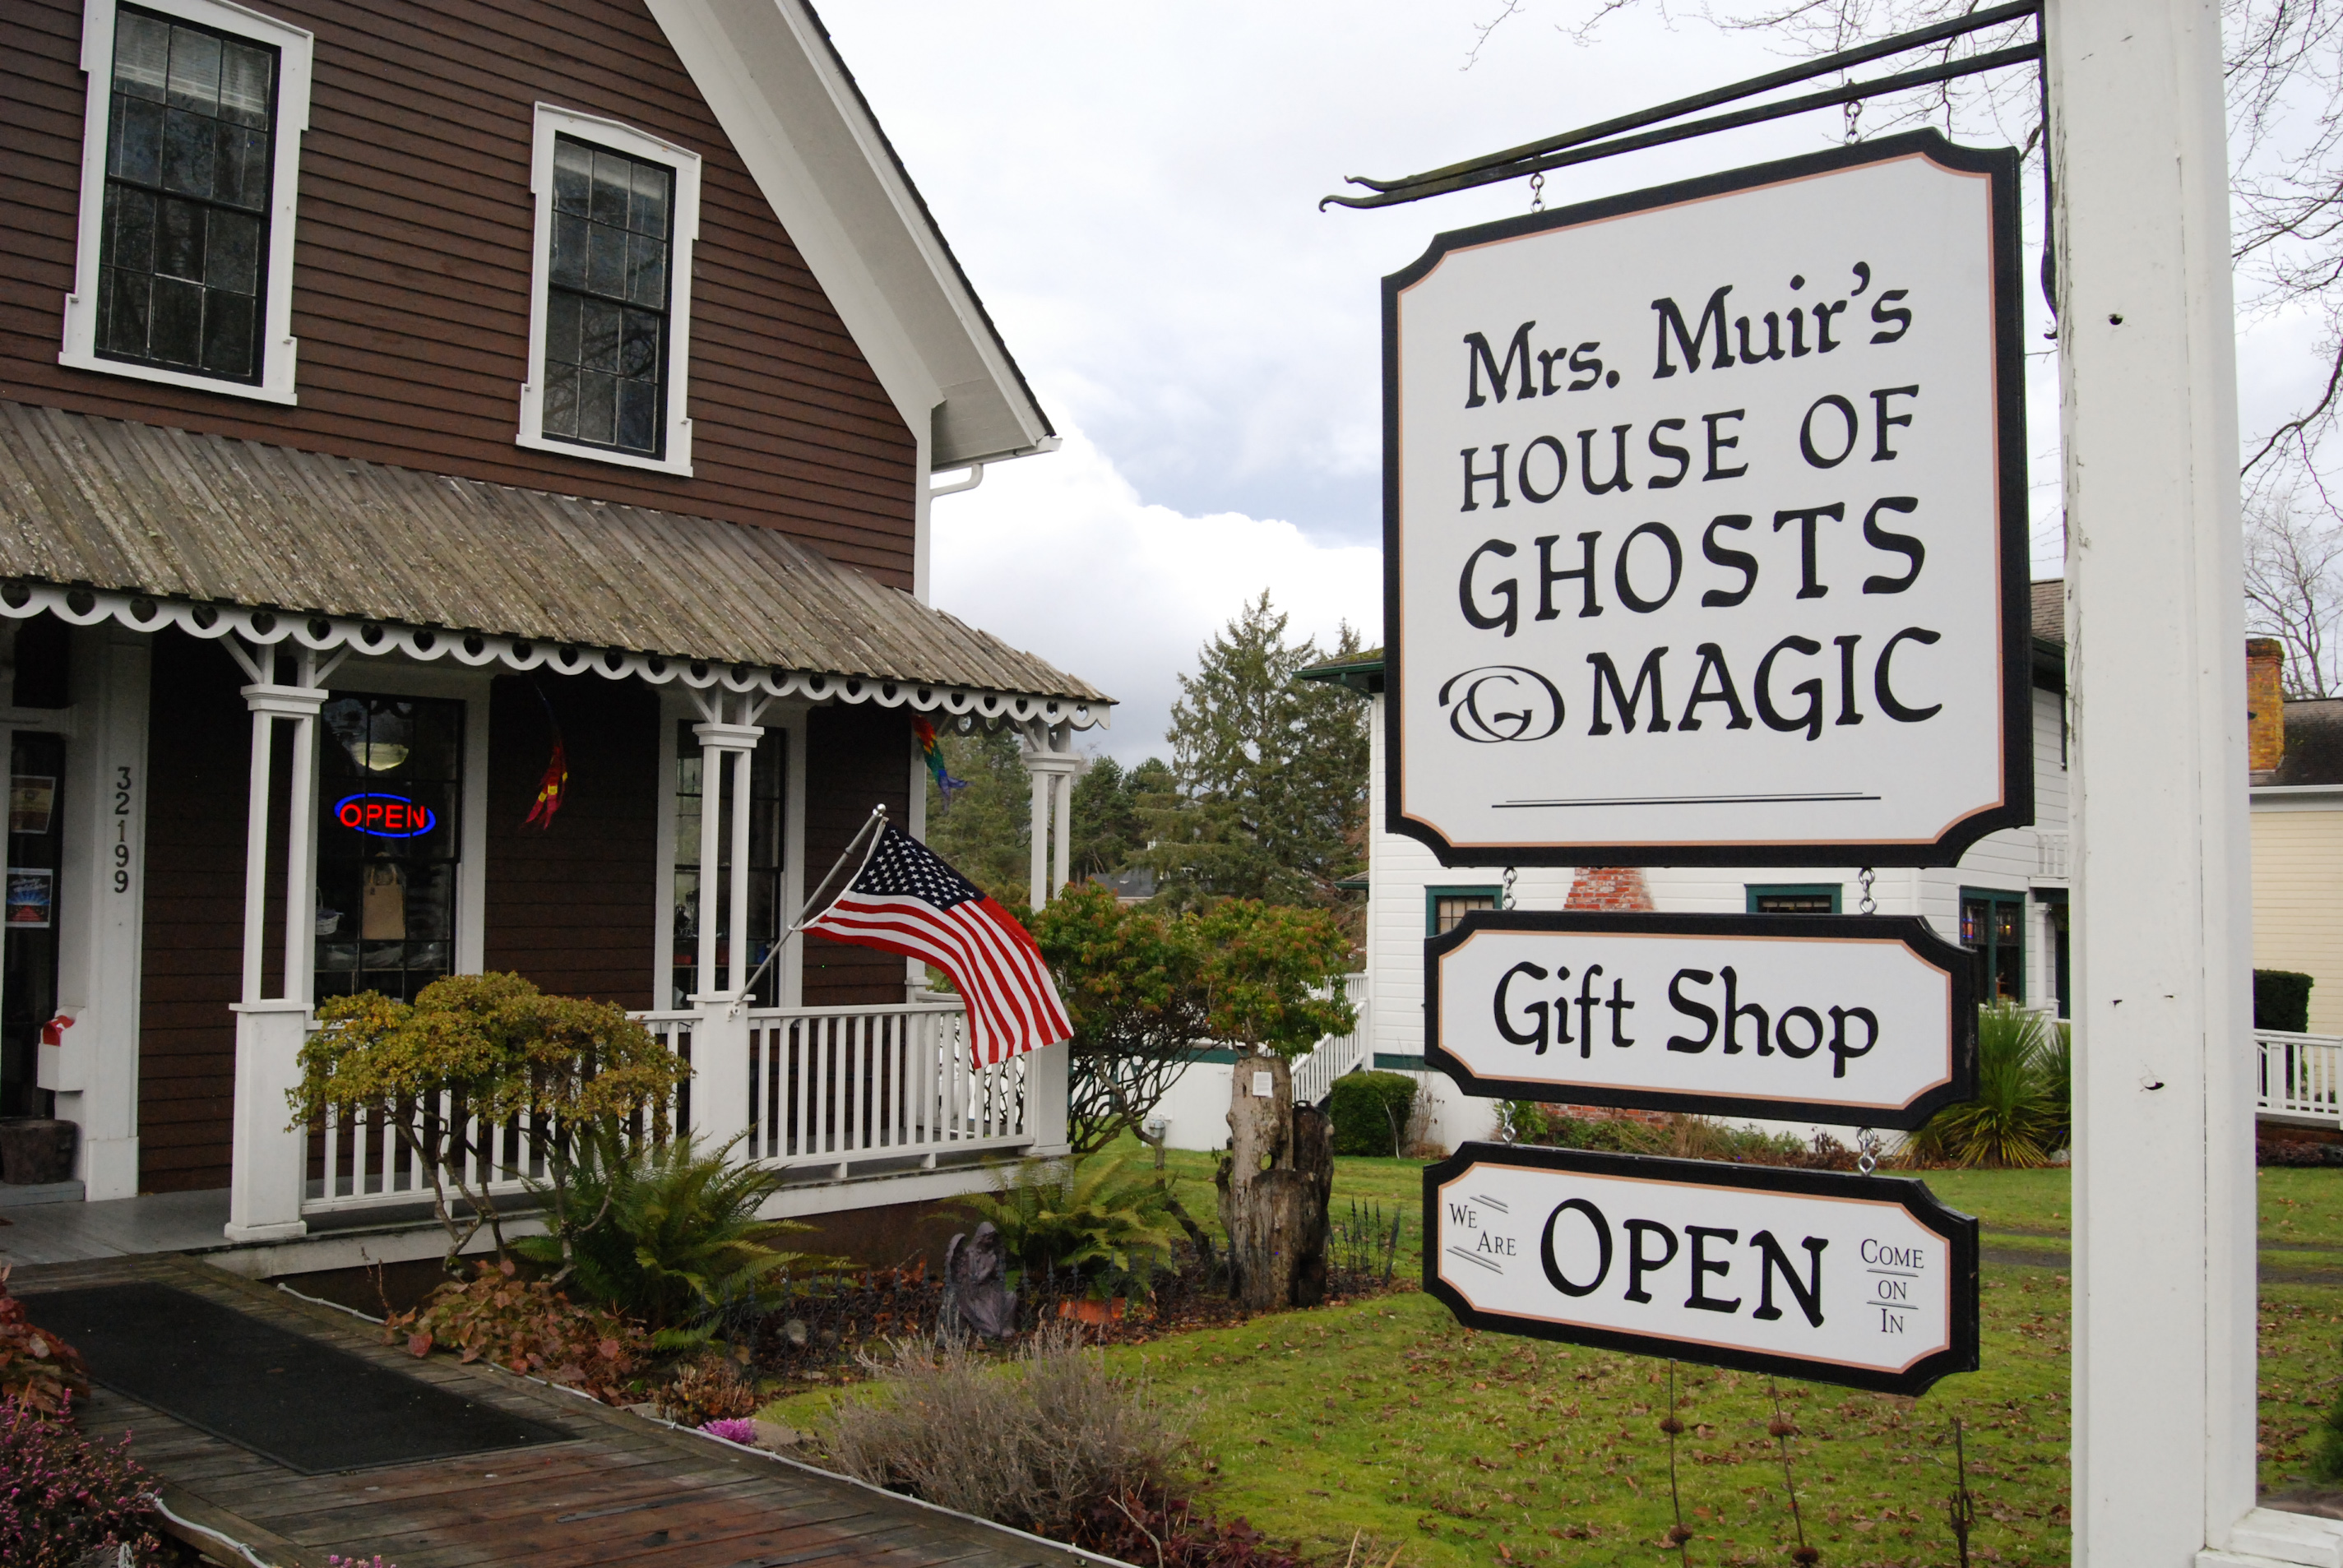 Mrs Muir's House of Ghosts and Magic is a great stop for those interested in Port Gamble's paranormal activities (Rebecca Mongrain/Seattle Refined)